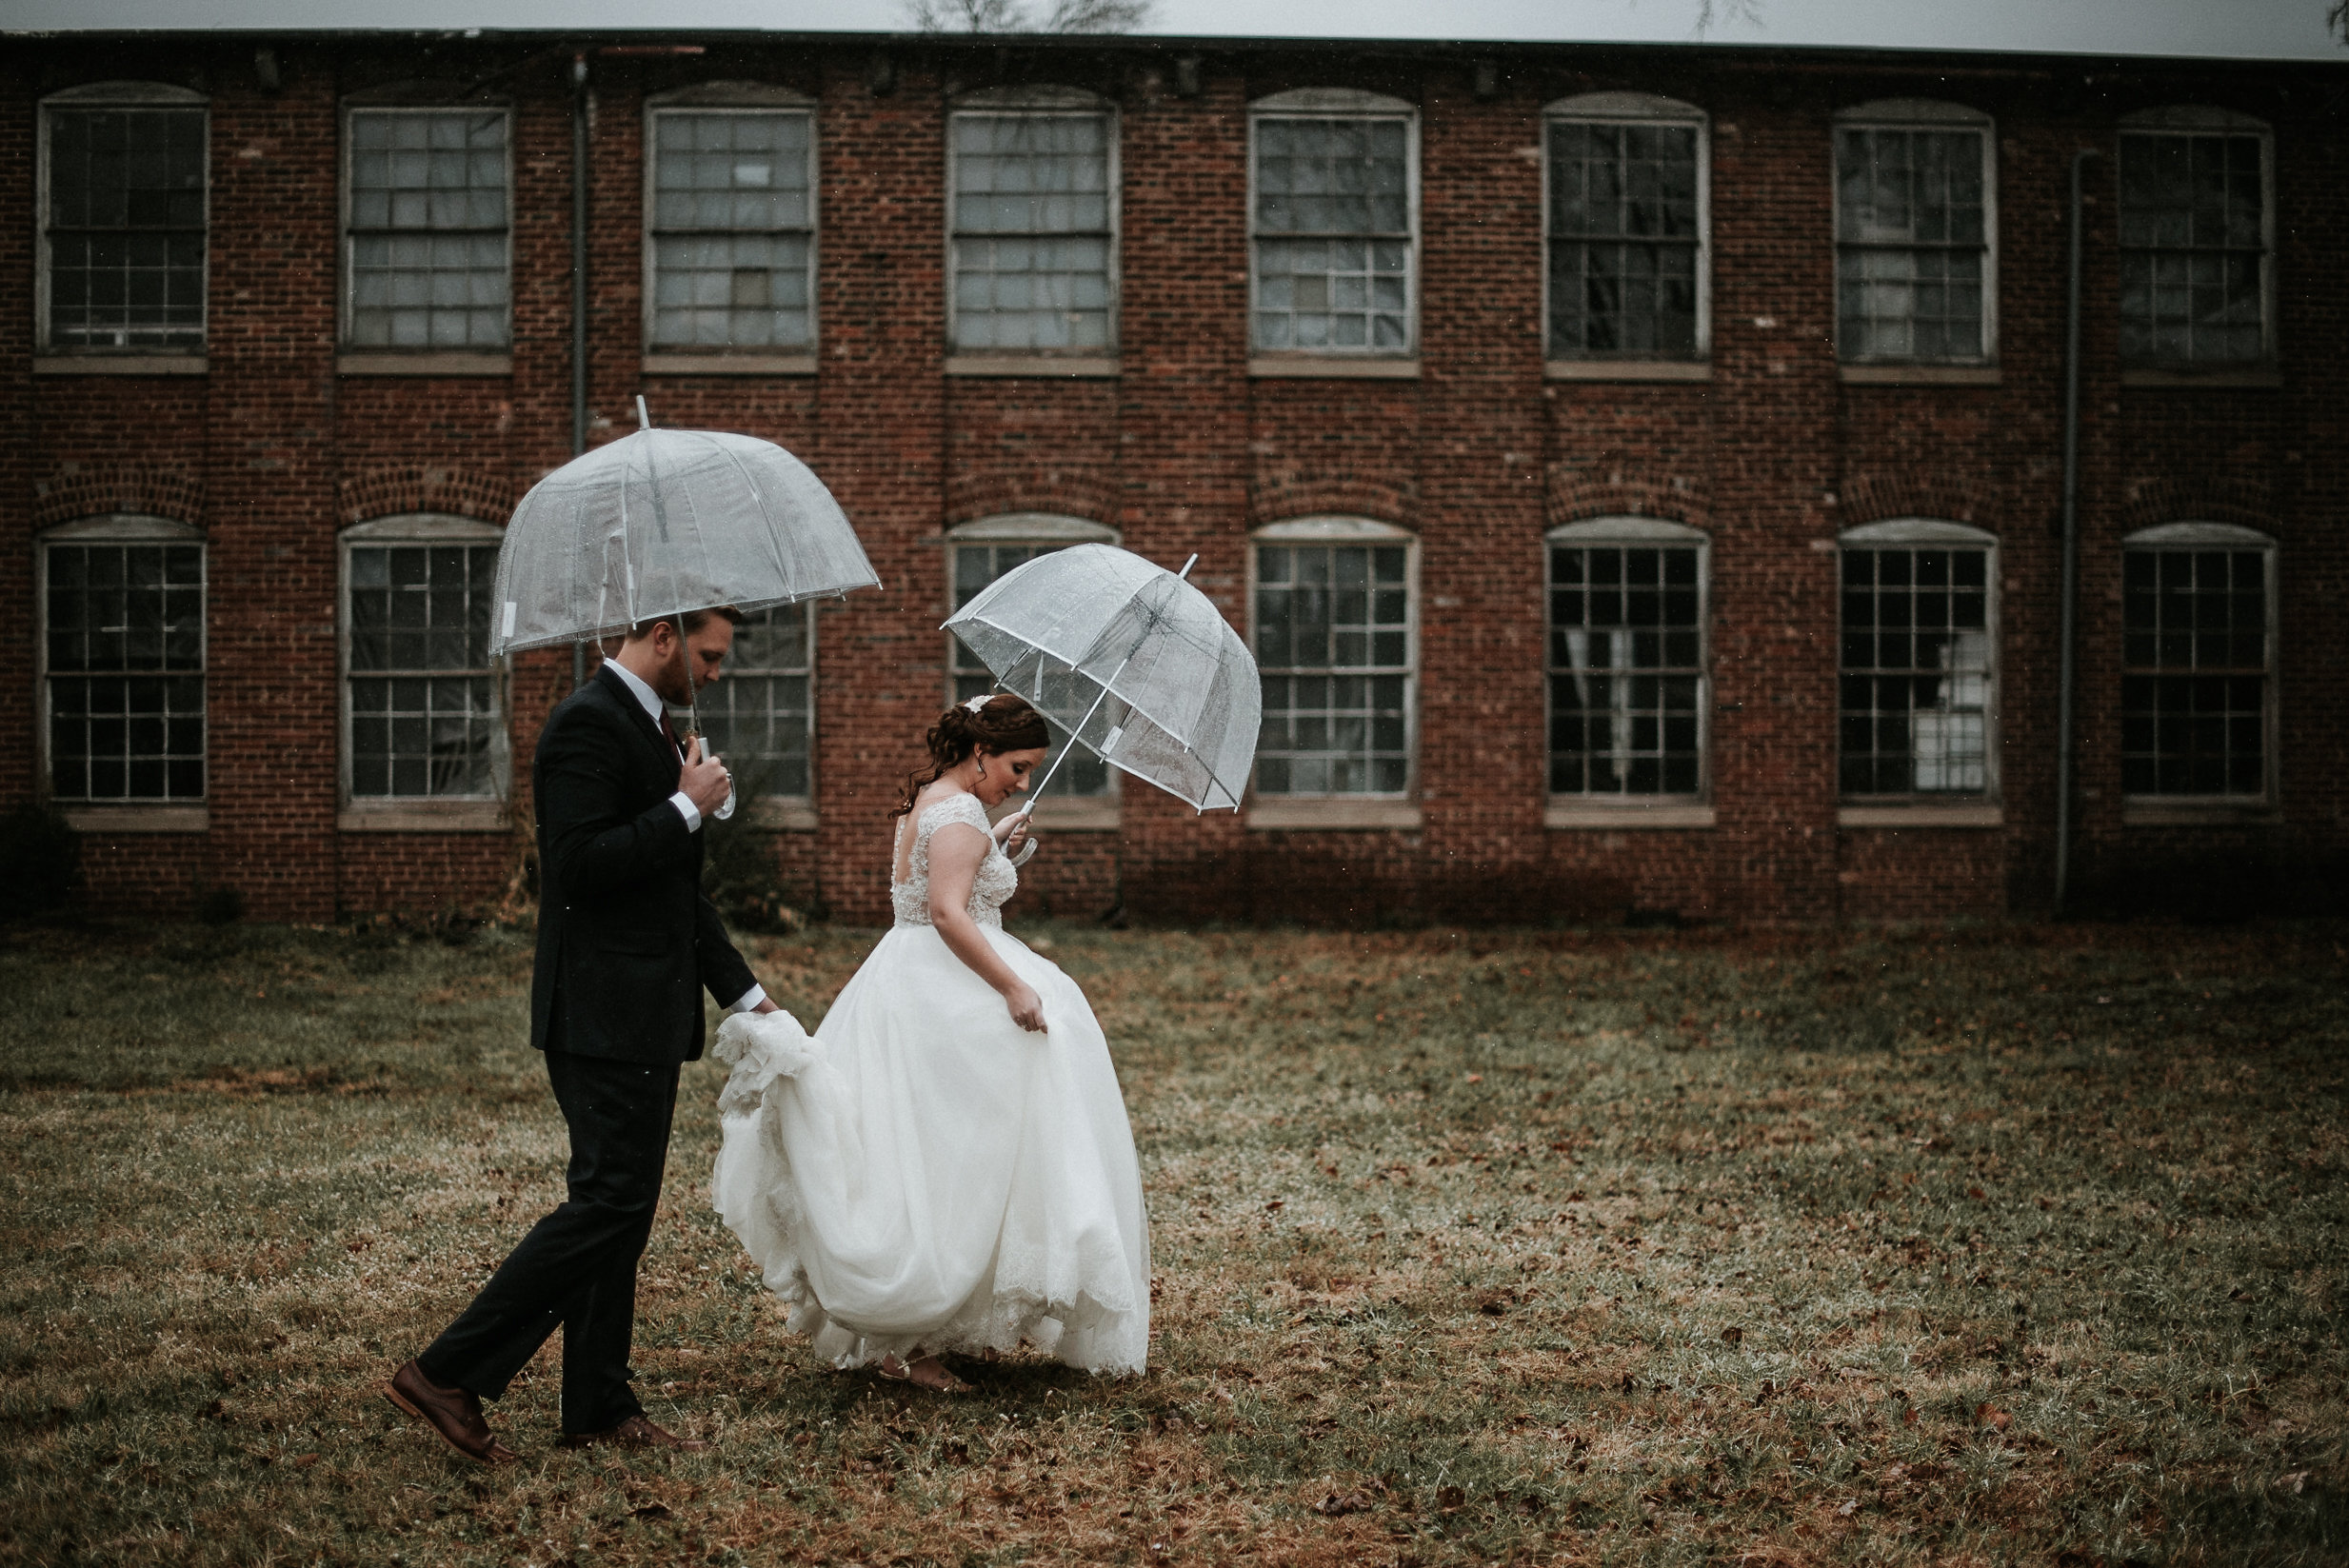 Bride and groom walking across lawn in front of factory